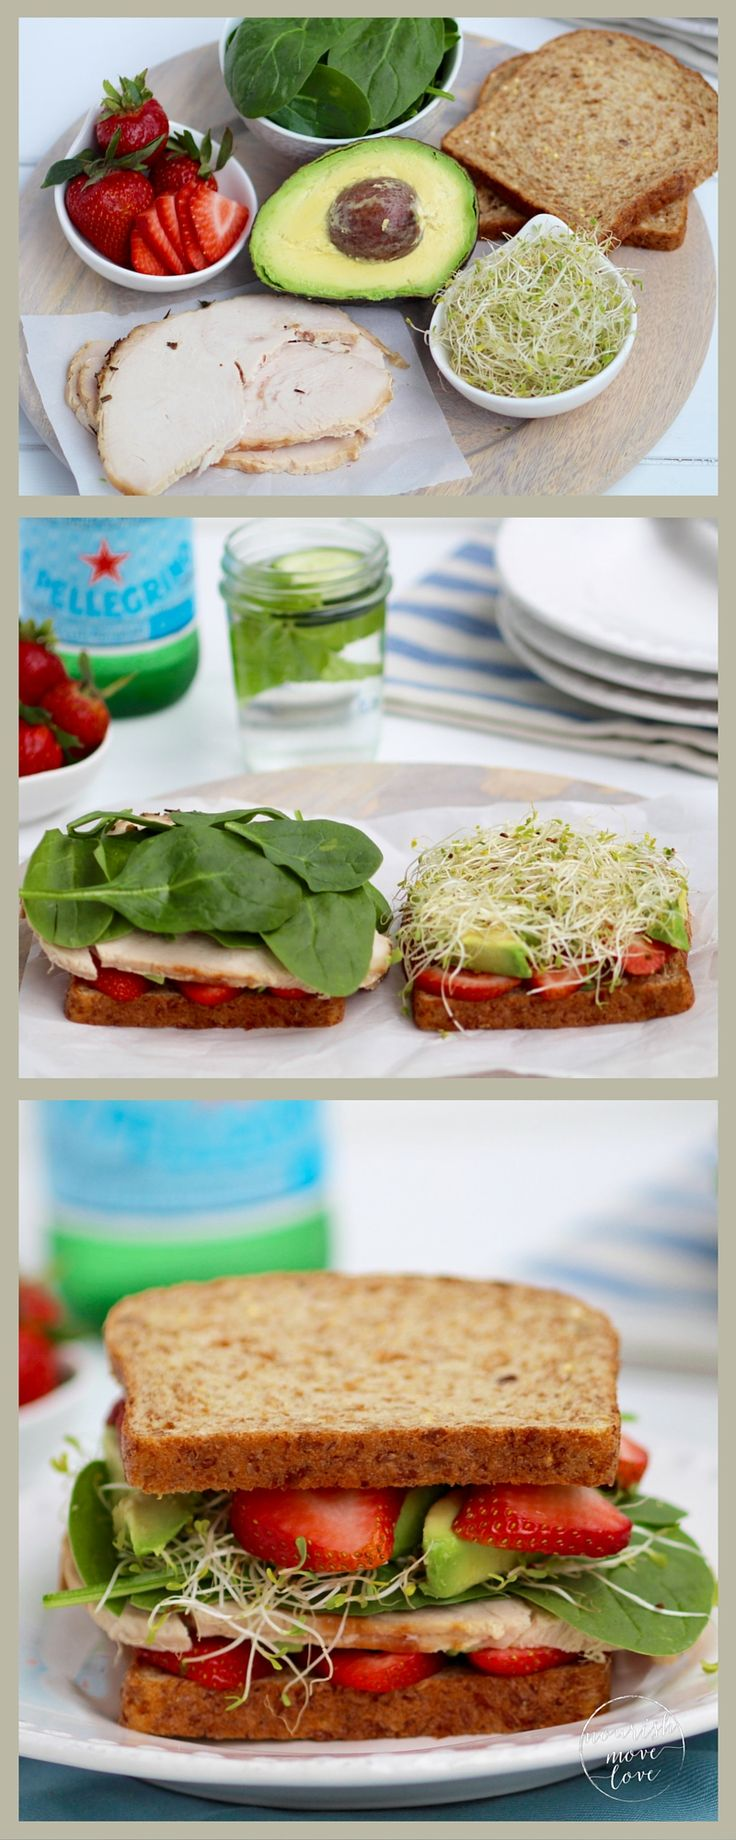 two healthy lunch recipes that can be tossed together in 15 minutes or less; both the strawberry spinach sandwich and salad can feed a small crowd or pack up nicely for lunches and picnics!